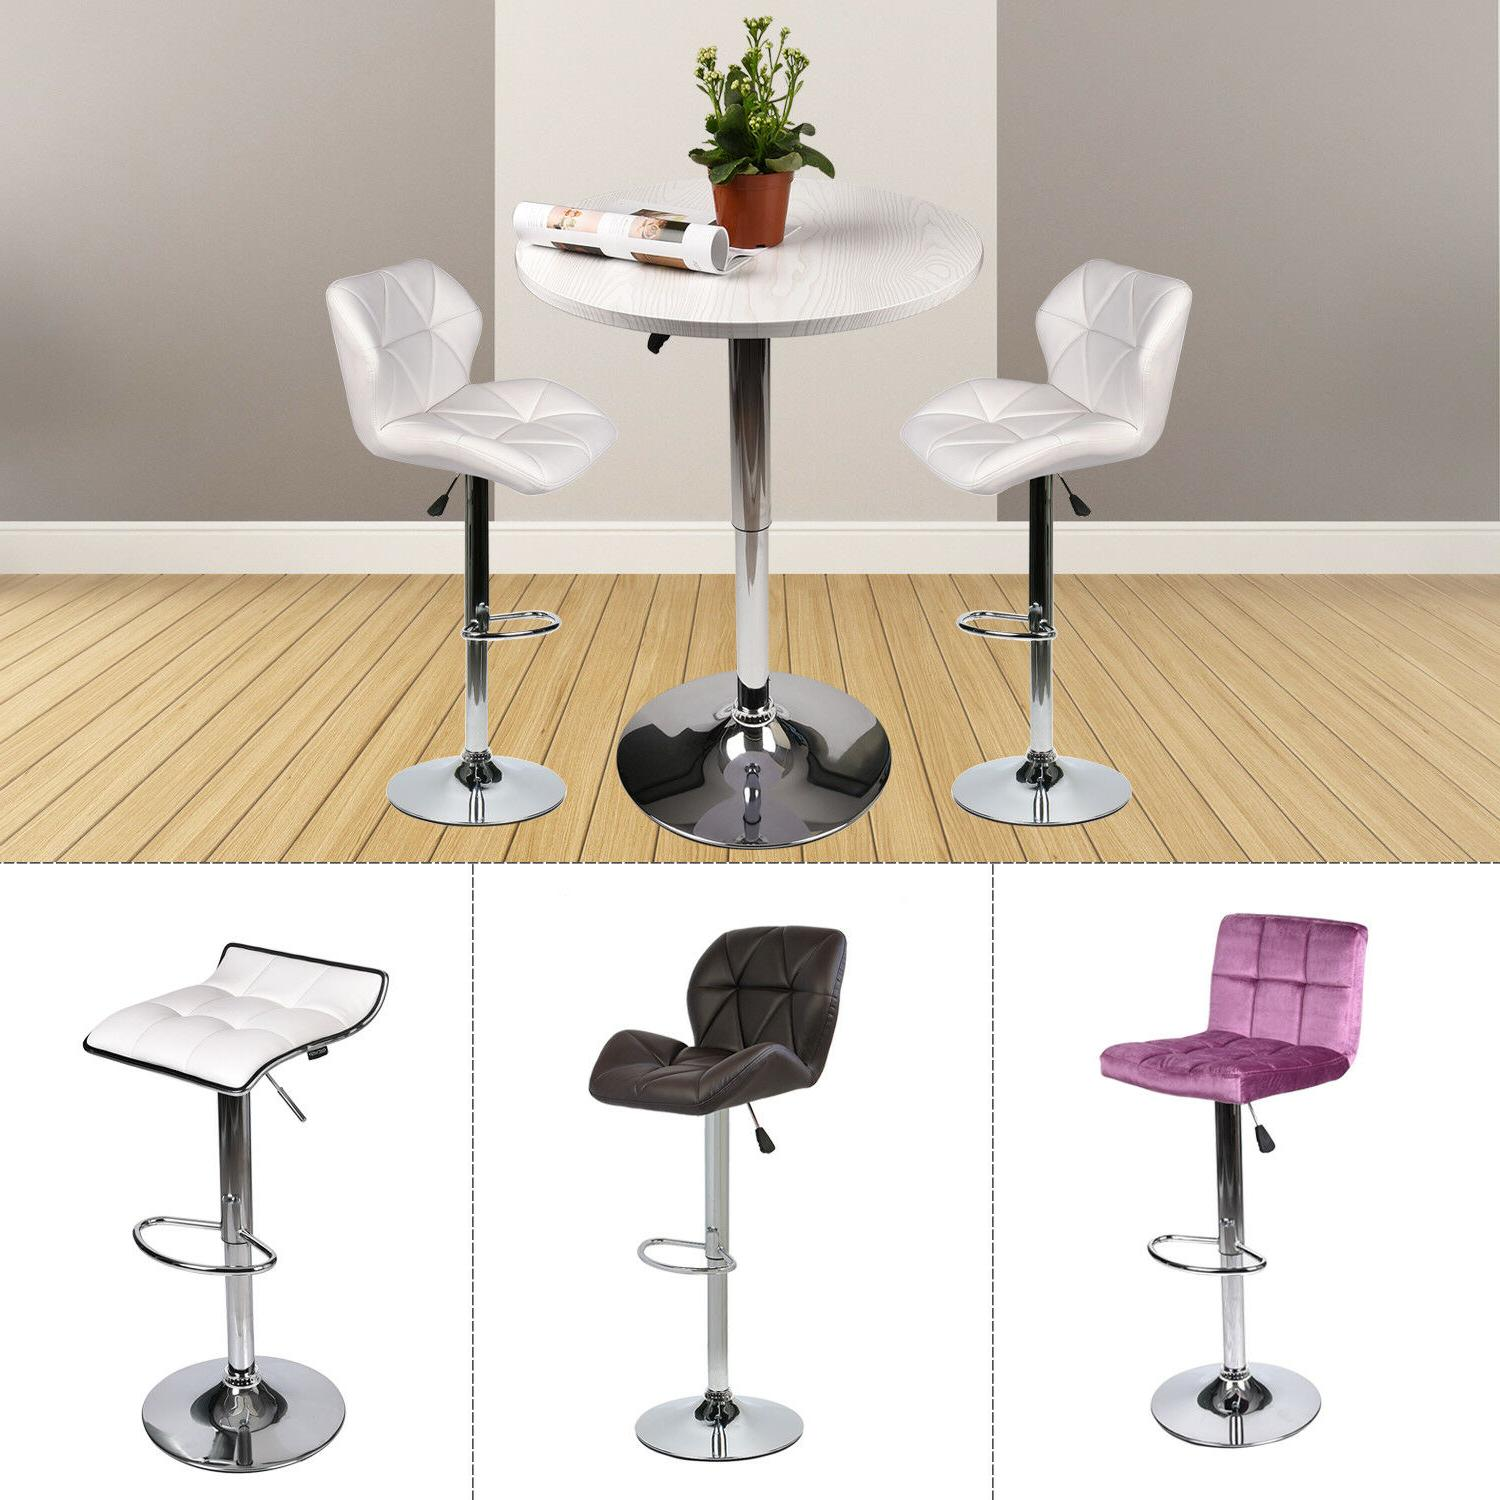 Table And Bar Stools 3 Piece Pub Table Set Bar Stools Adjustable Dining